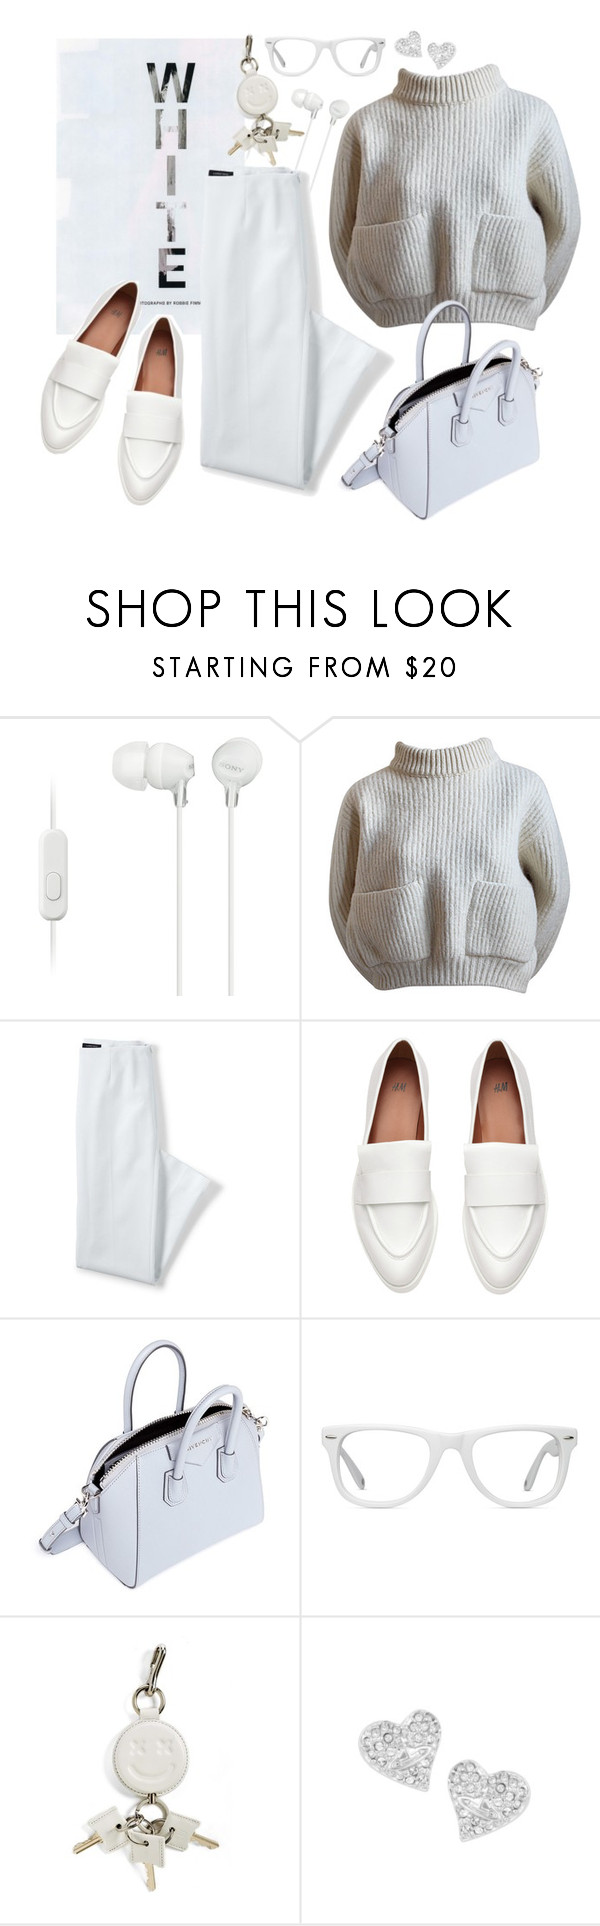 """Untitled #302"" by eynav ❤ liked on Polyvore featuring Sony, Alaïa, Lands' End, Givenchy, Muse, Alexander Wang and Vivienne Westwood"